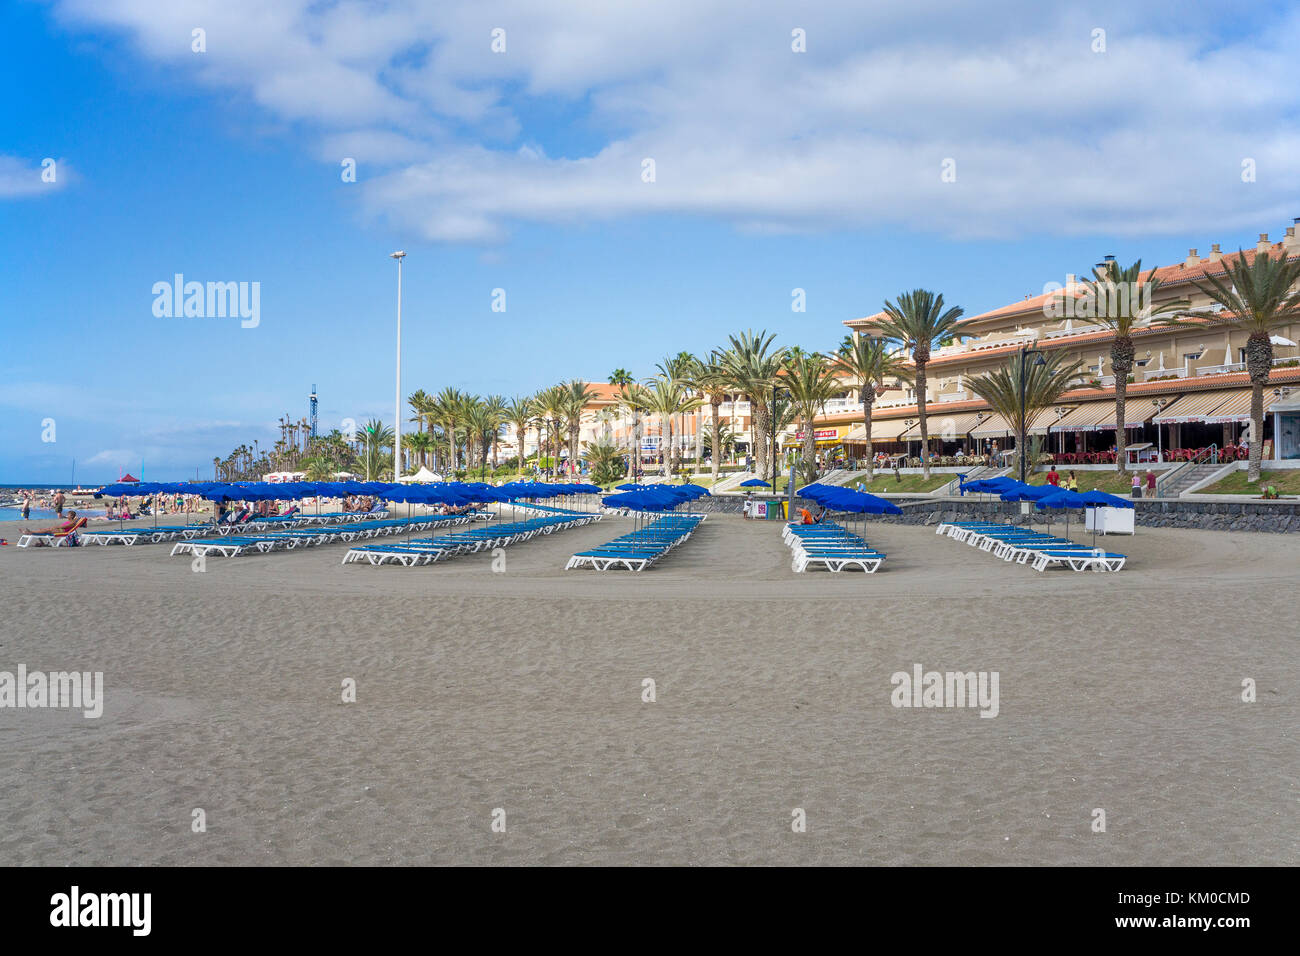 Sunbeds and parasols at the beach, Los Christianos, Tenerife island, Canary islands, Spain - Stock Image